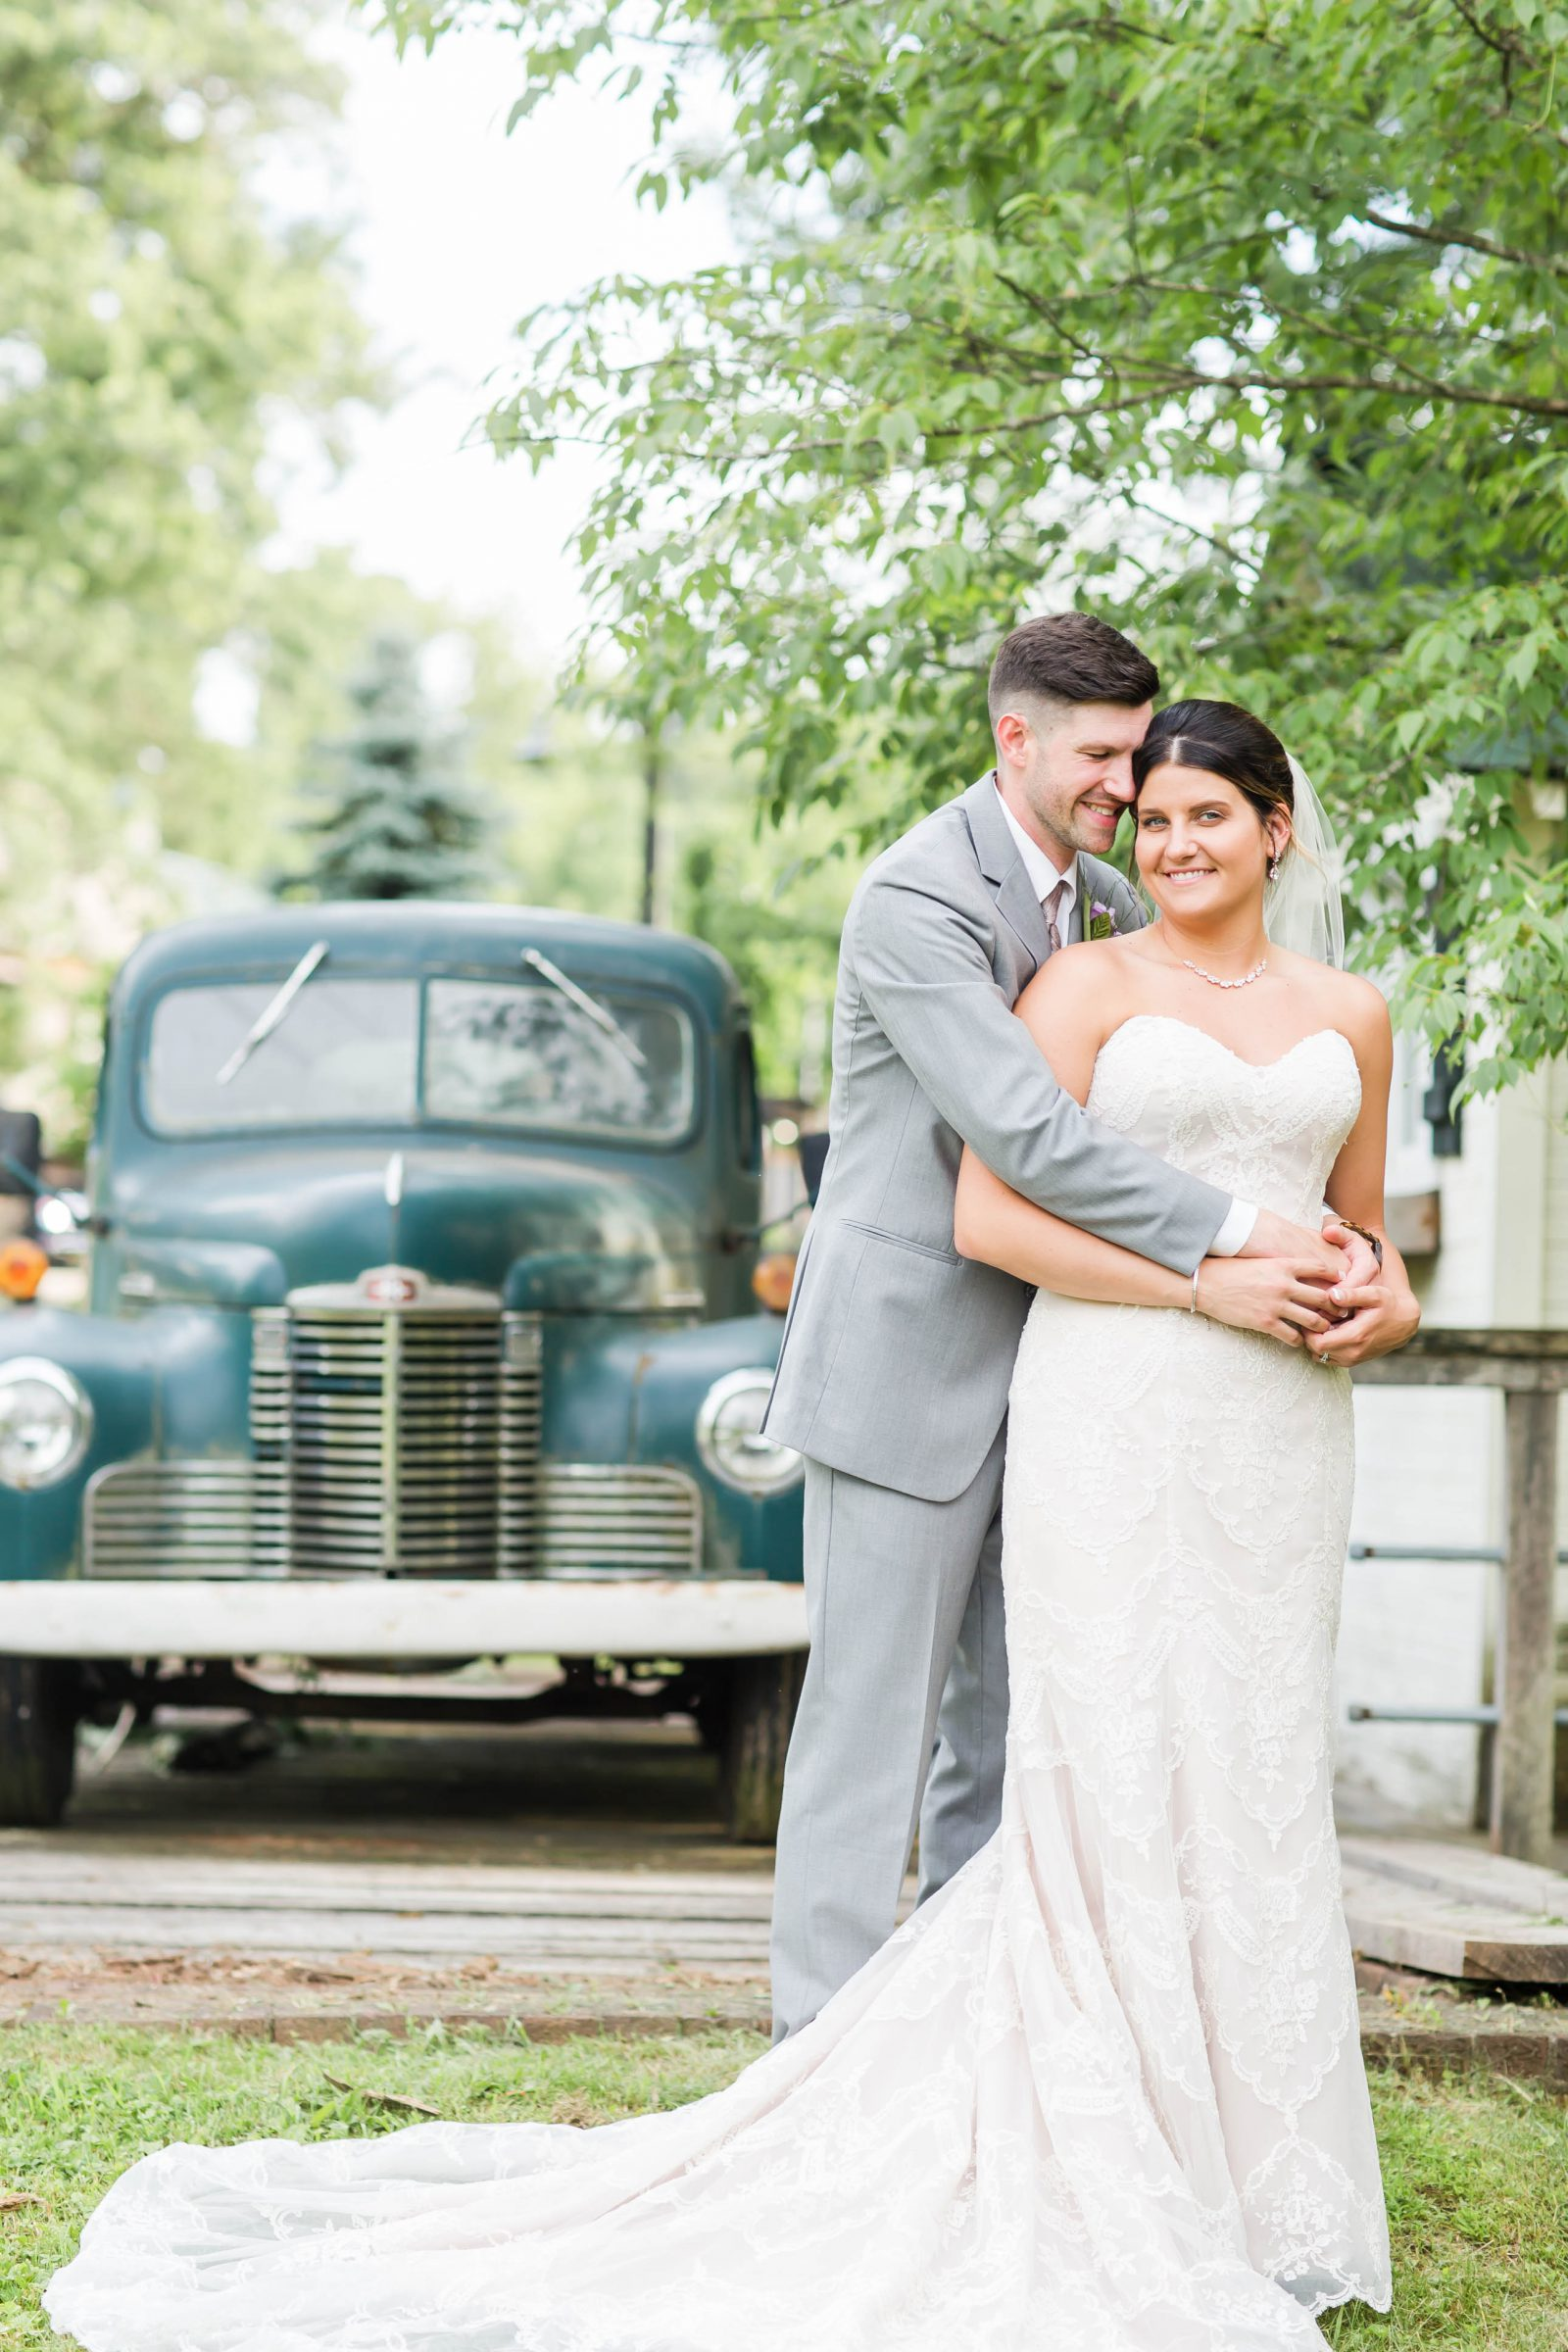 rivercrest-farm-summer-wedding-loren-jackson-photography-92